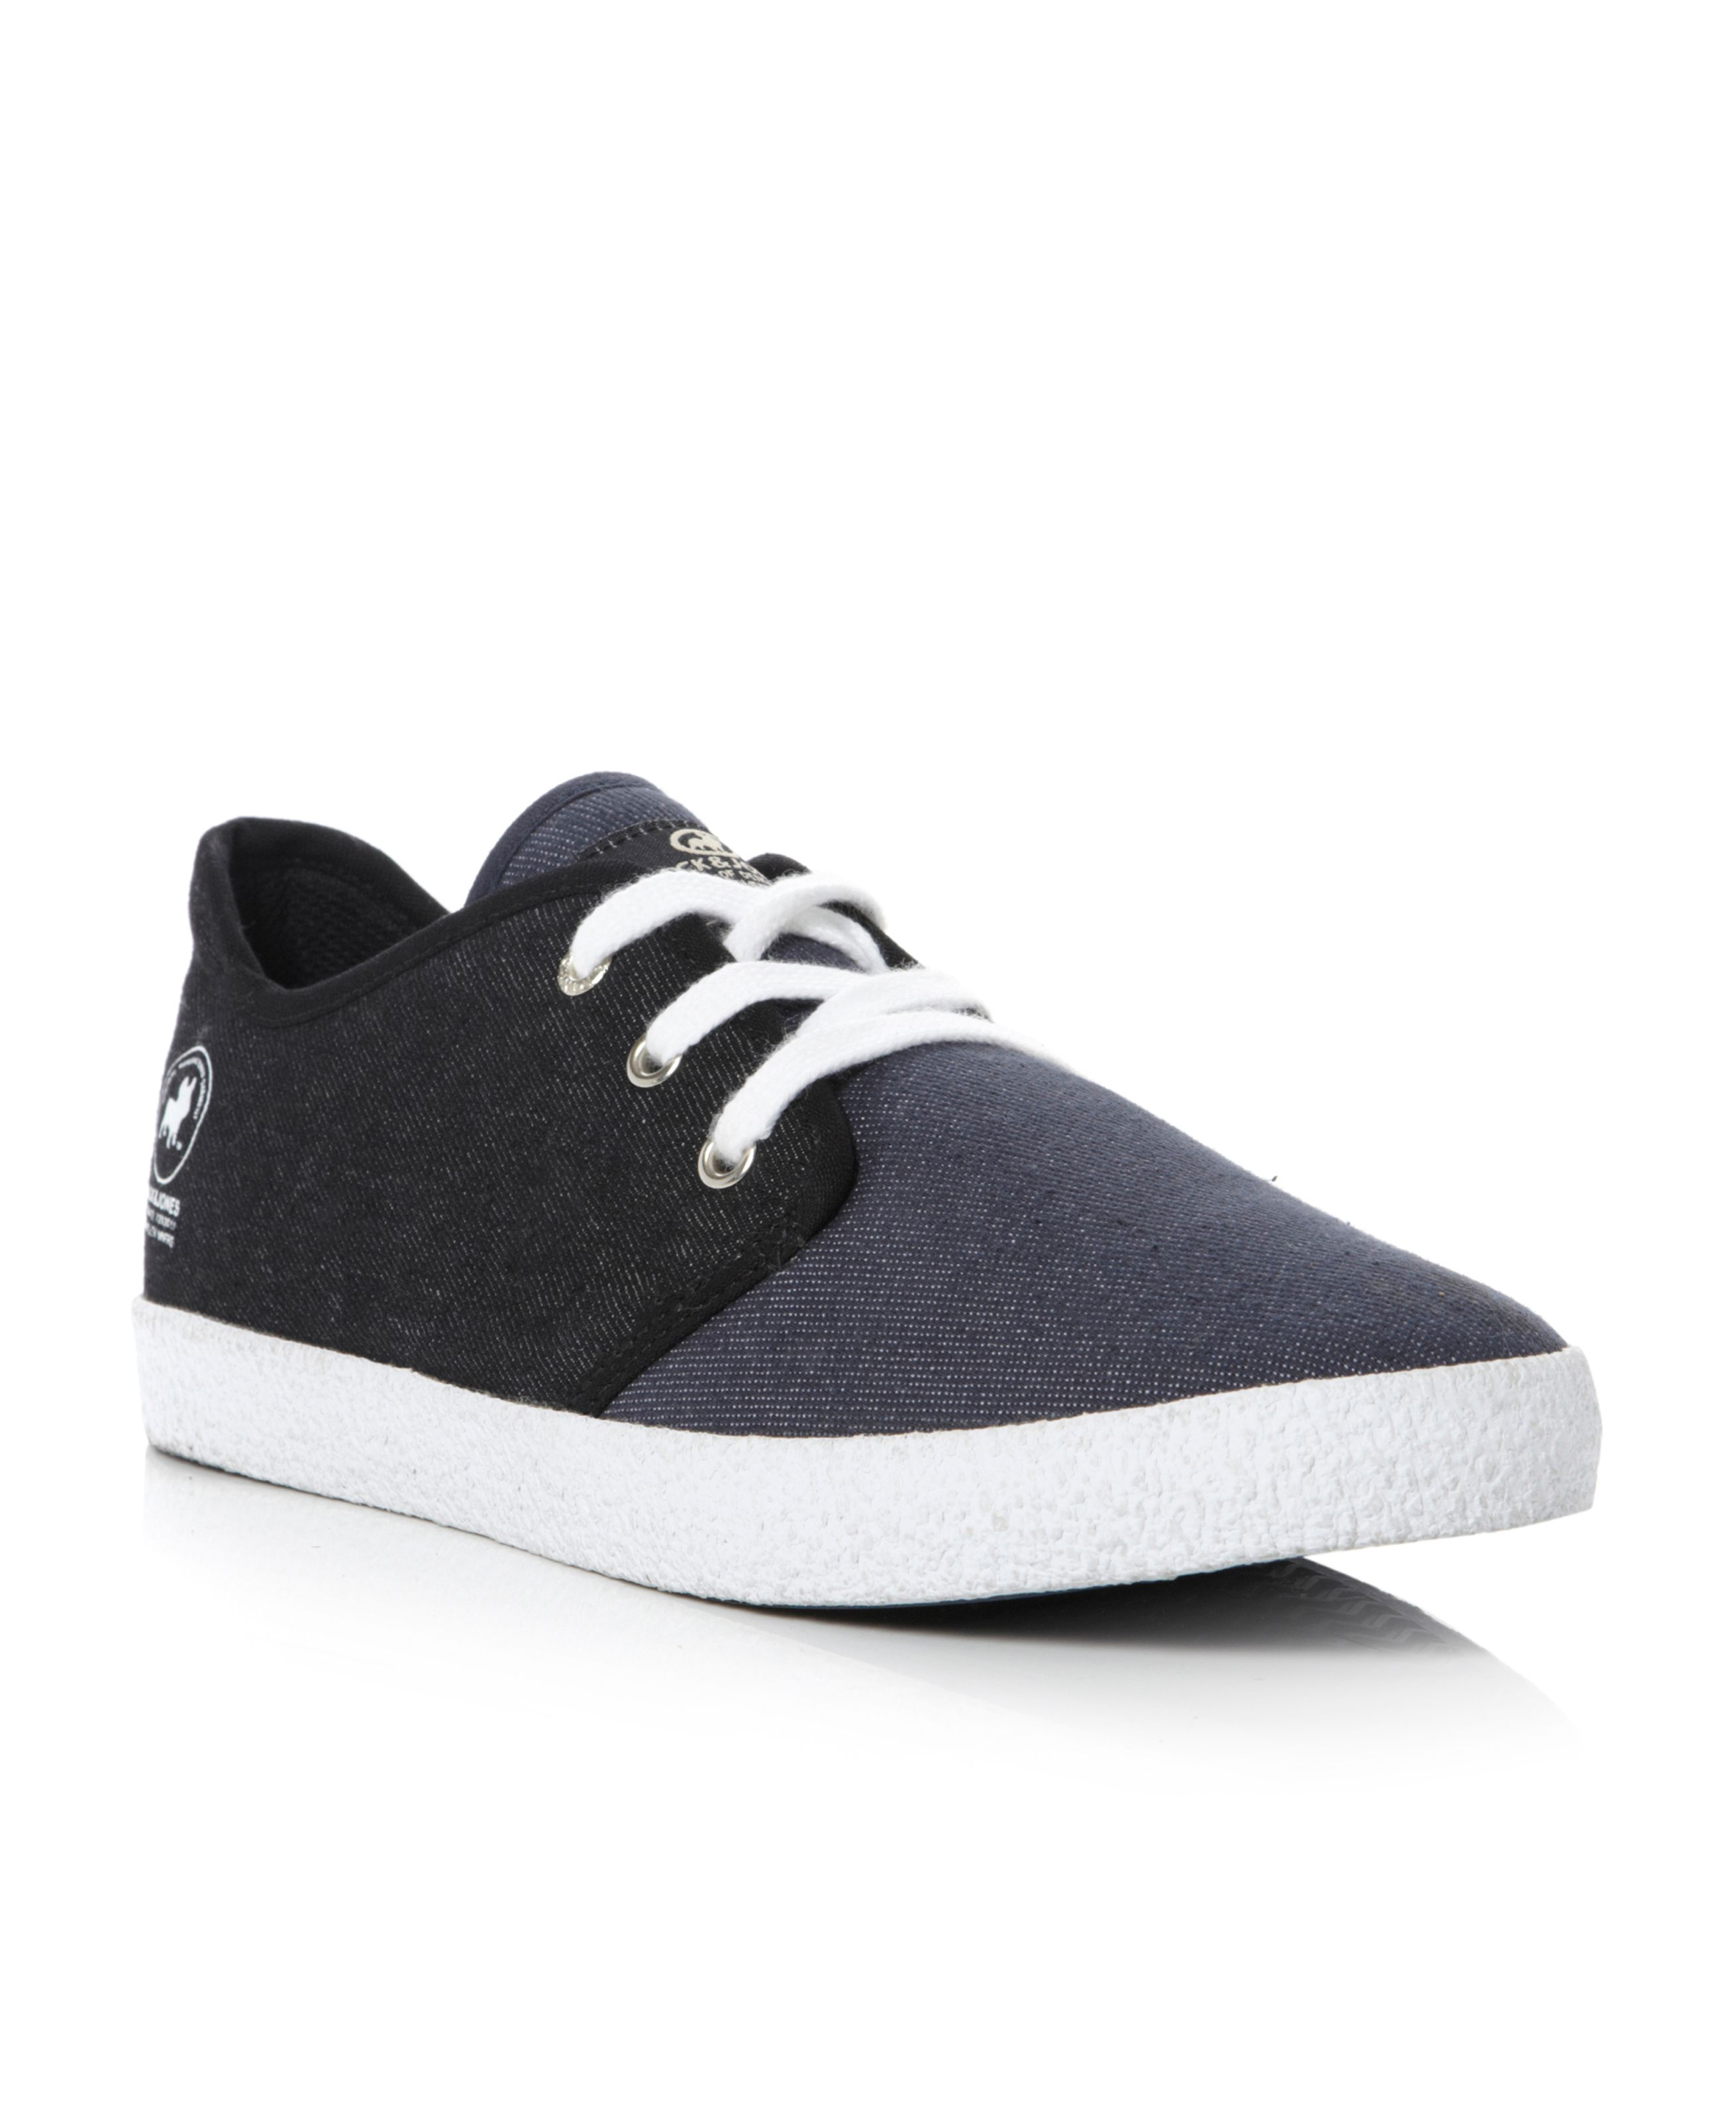 Jj Oslo Shoe two tone denim trainer